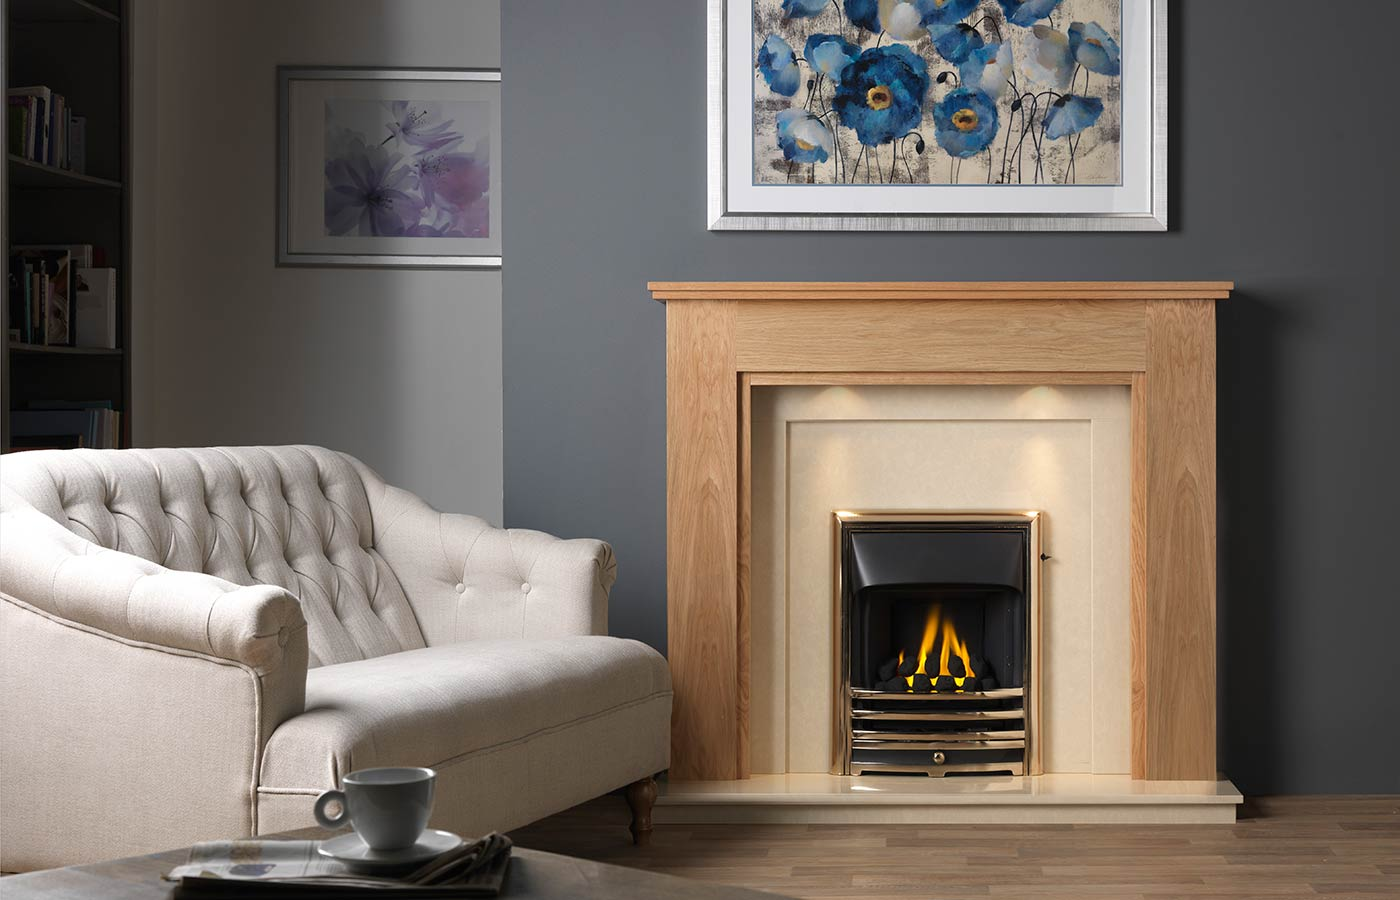 Atwick Fireplace Suite in Light Oak Veneered MDF with Perla Marble Back Panel and Hearth, with Gallery Aurora Antique Brass Finish, with Open-Fronted Gas Convector Fire